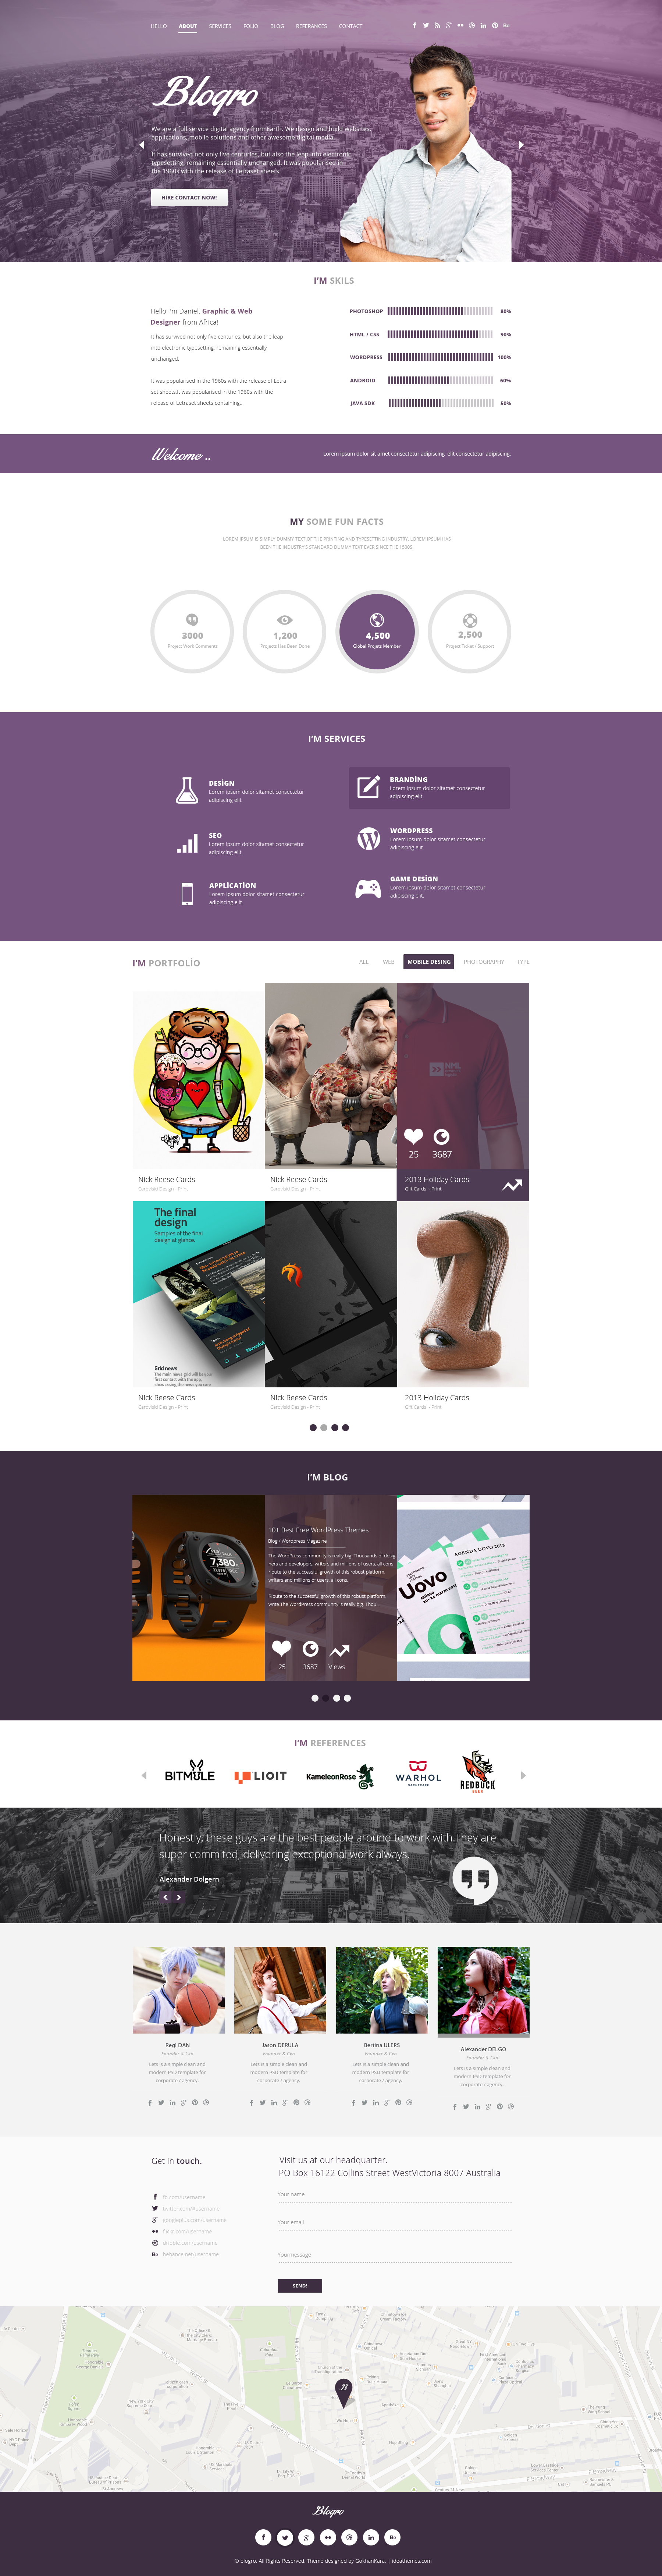 Blogro One Page Personal Web Design By Gokhankara